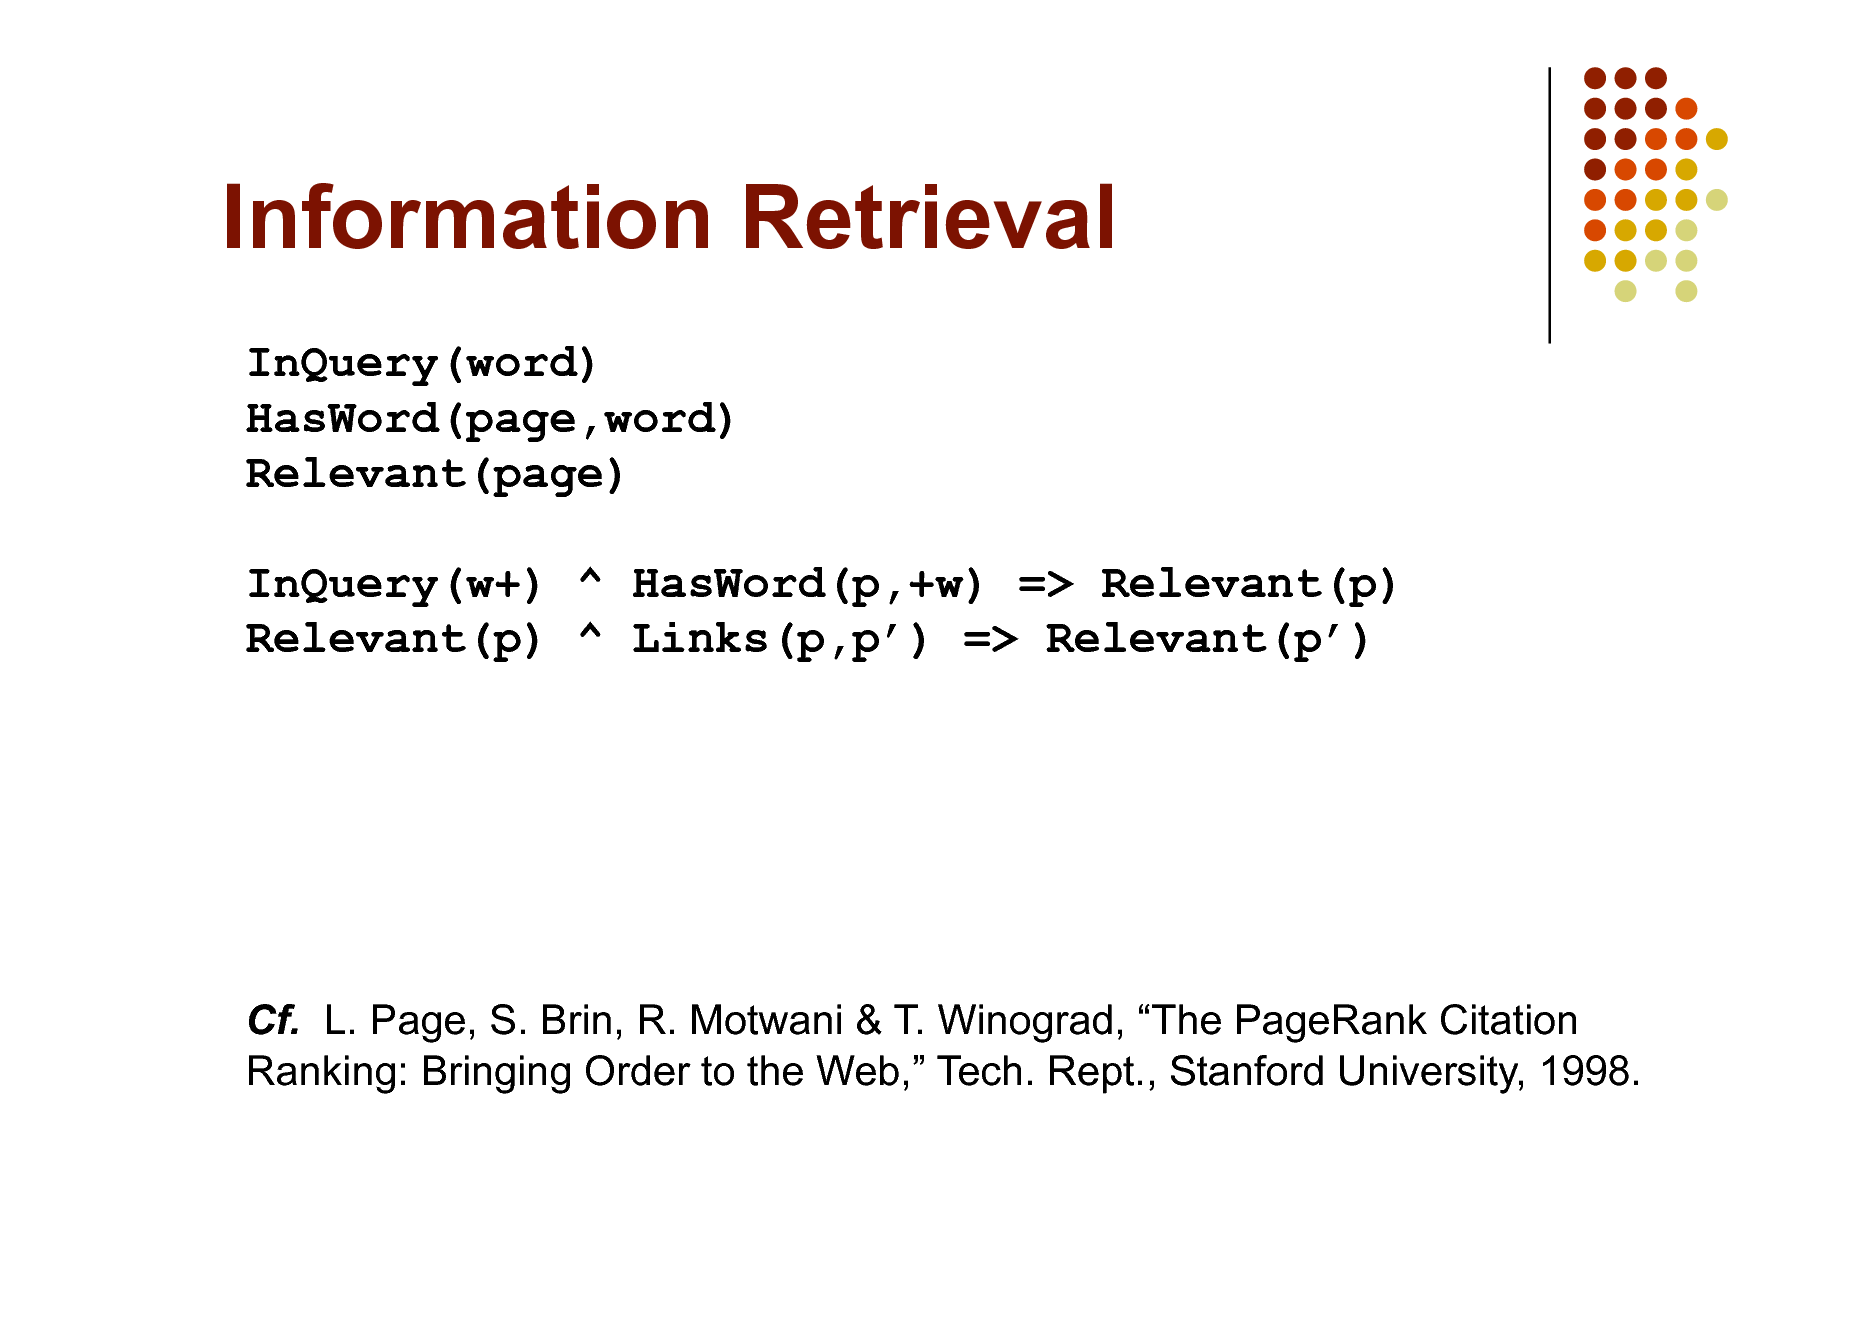 Slide: Information Retrieval InQuery(word) HasWord(page,word) Relevant(page) InQuery(w+) ^ HasWord(p,+w) => Relevant(p) Relevant(p) ^ Links(p,p) => Relevant(p)  Cf. L. Page, S. Brin, R. Motwani & T. Winograd, The PageRank Citation Ranking: Bringing Order to the Web, Tech. Rept., Stanford University, 1998.